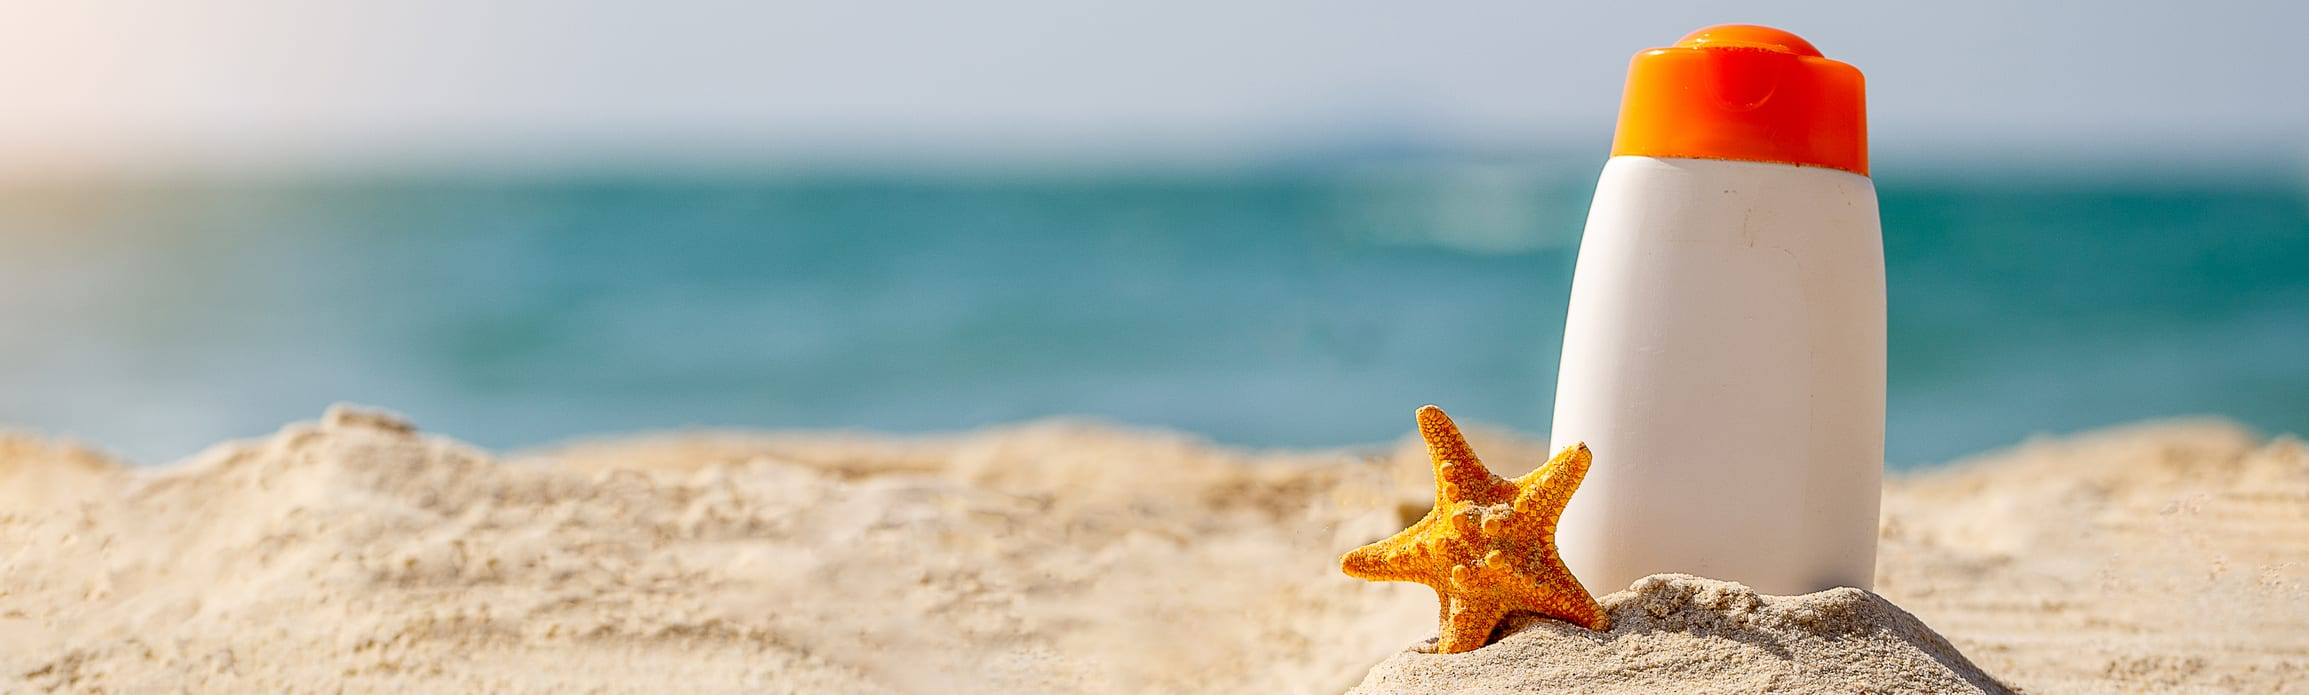 Sunscreen bottle at the beach with a starfish